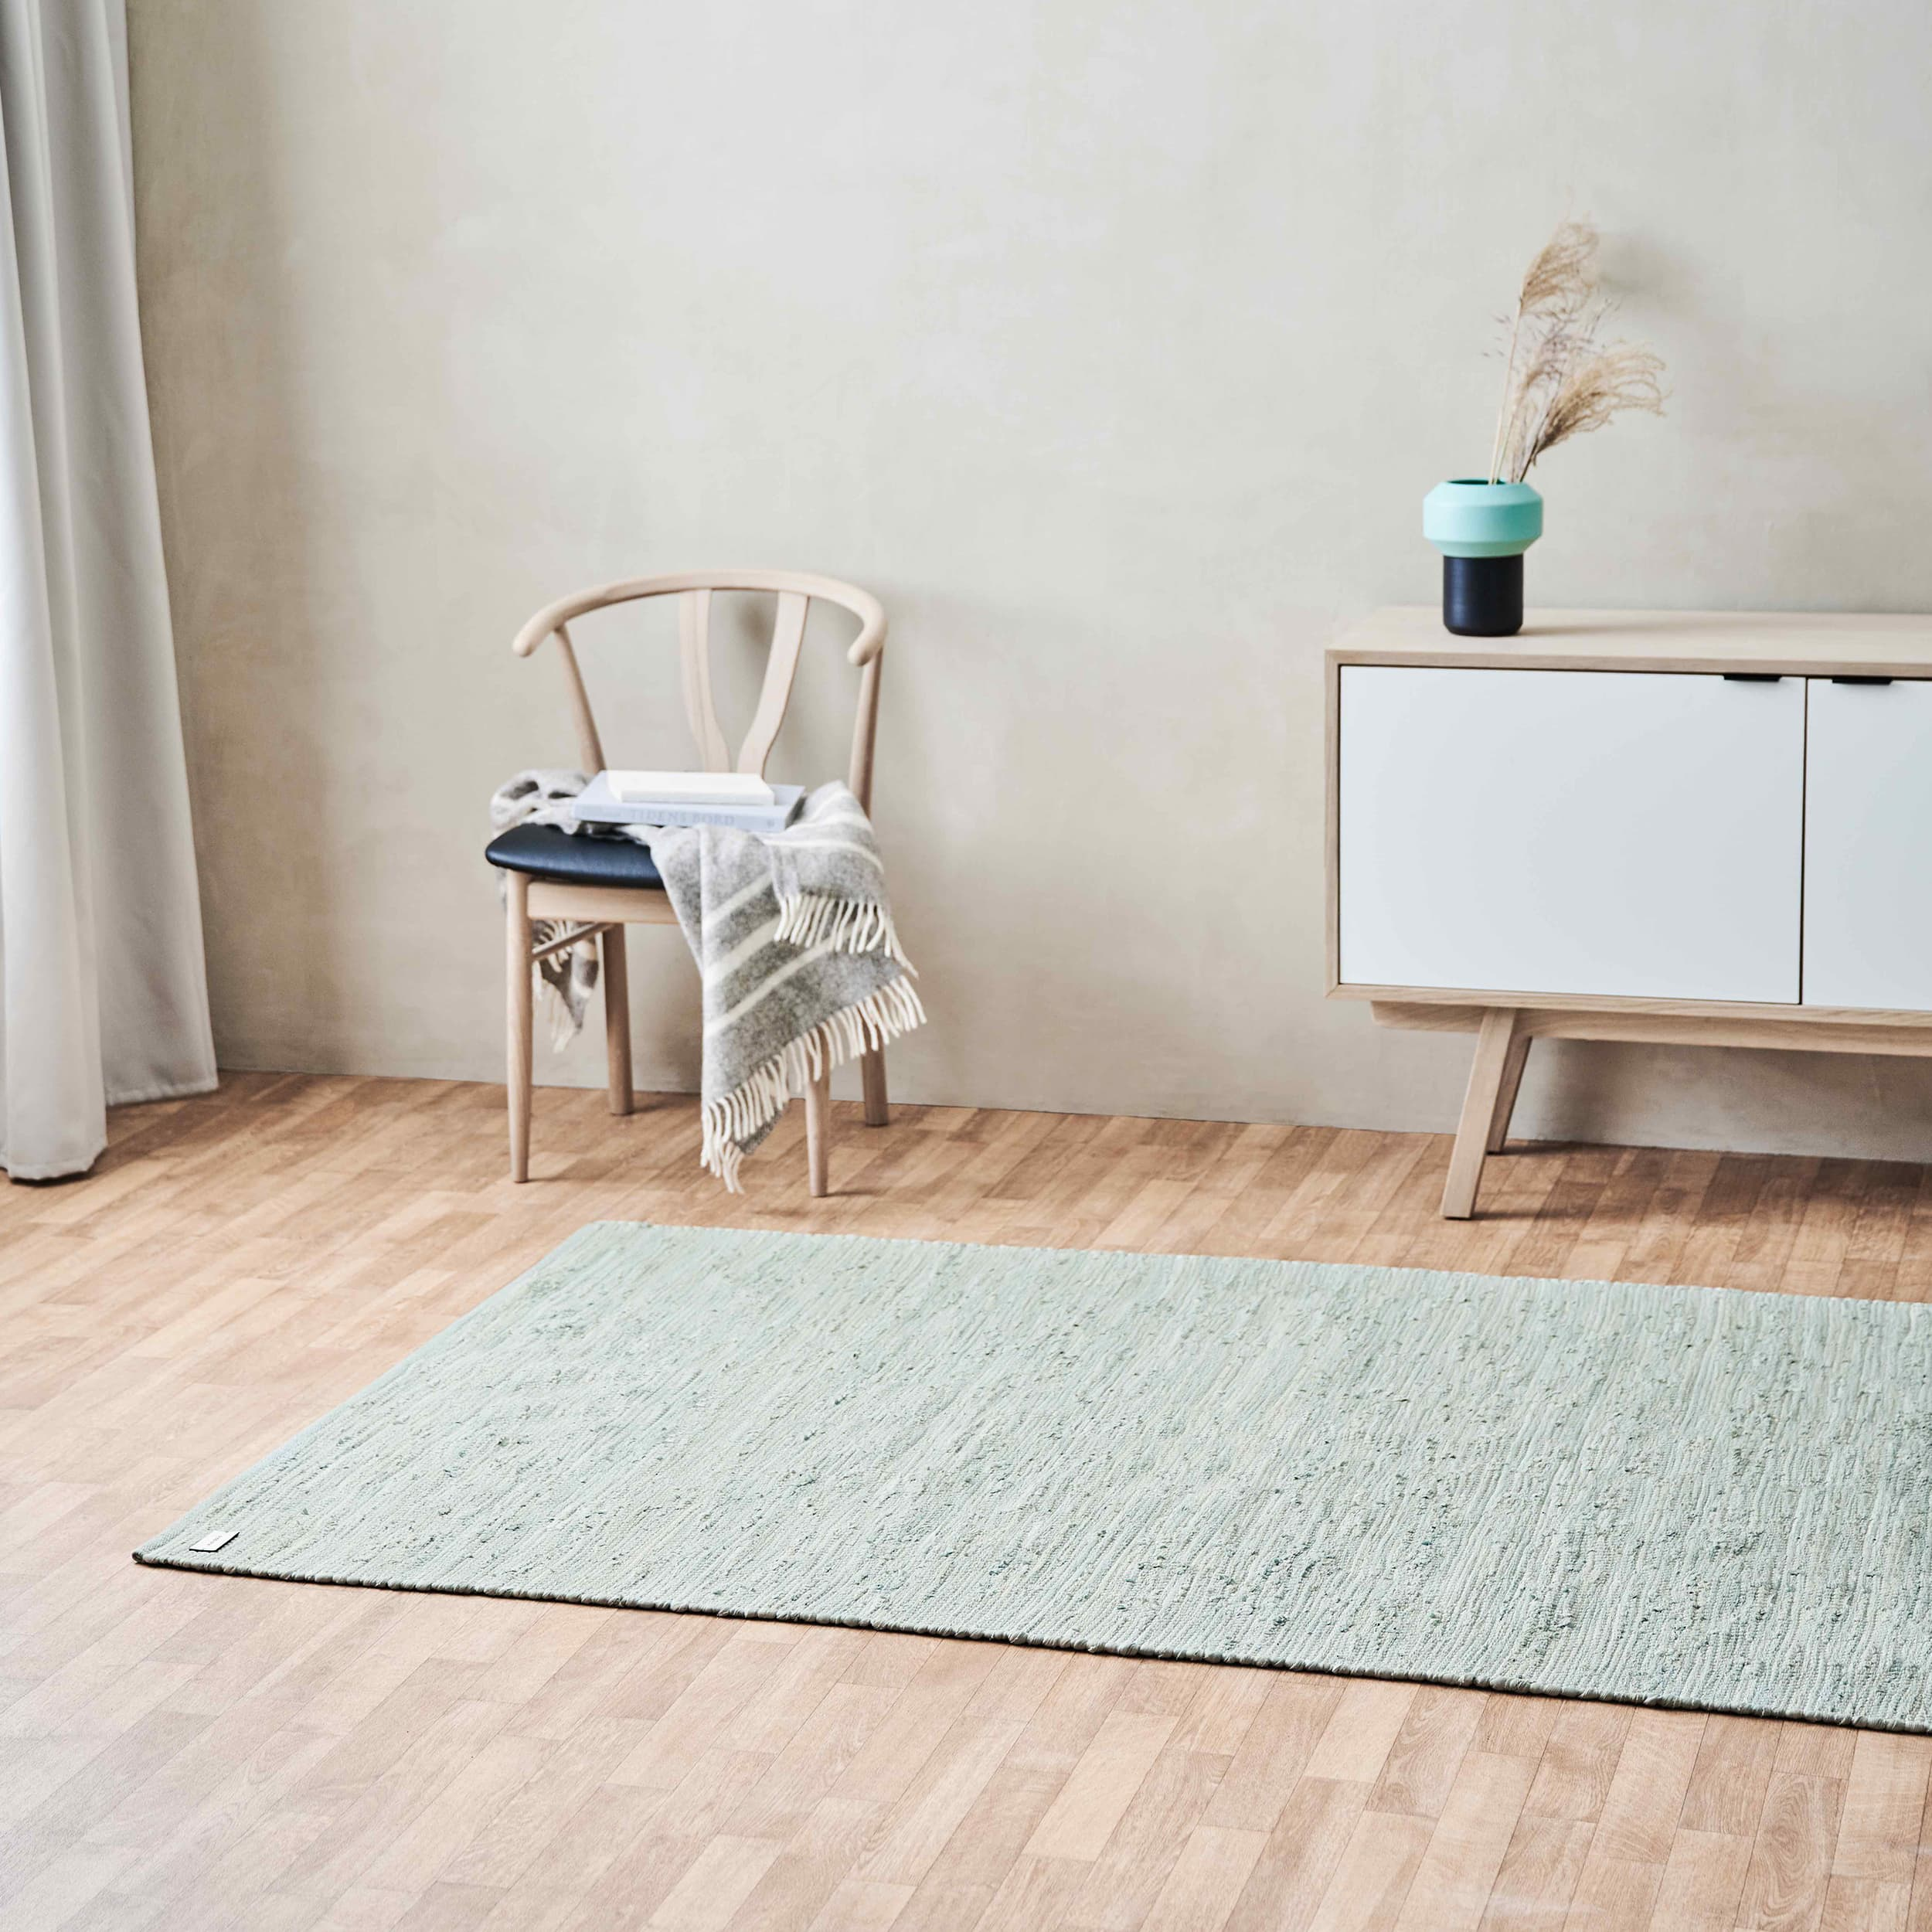 Picture of: Taeppet I Stuen Rug Solid Journalen